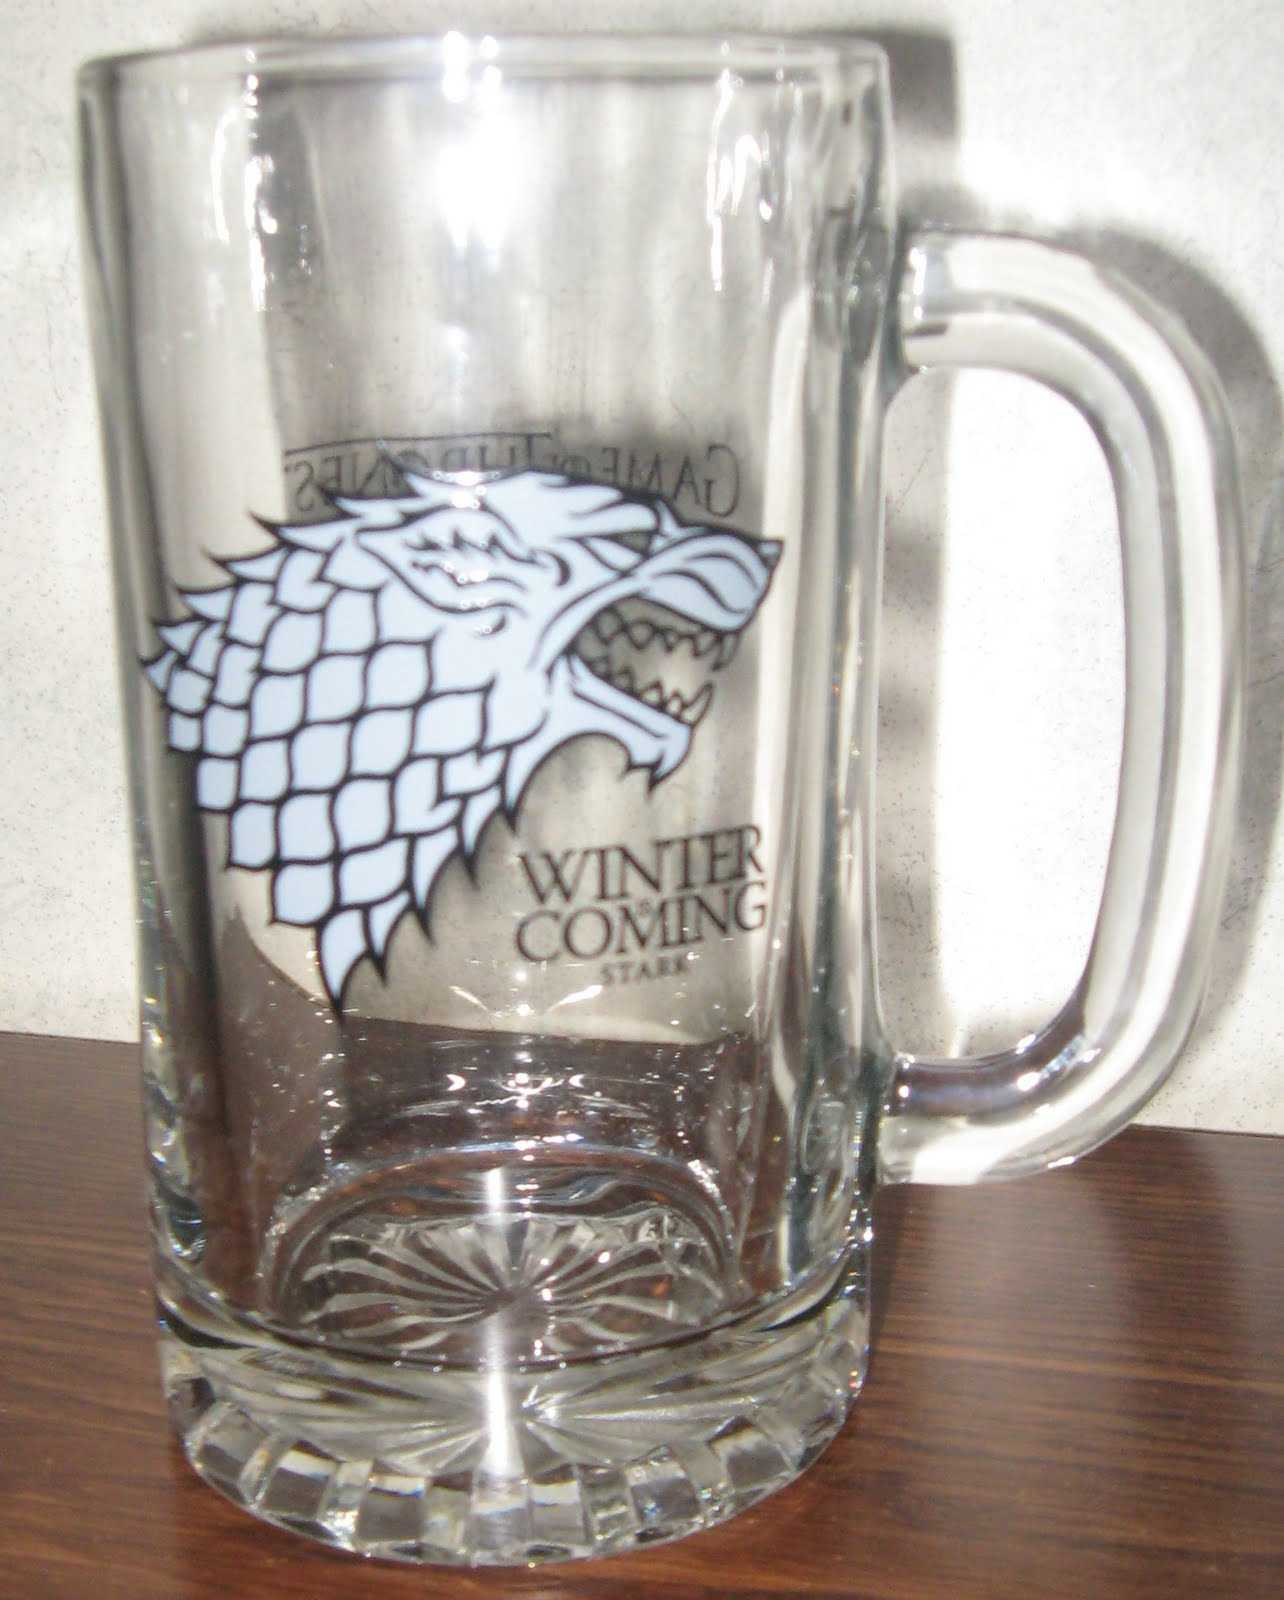 Game Of Thrones Steins And More Shirts Game Of Thrones News A Forum Of Ice And Fire A Song